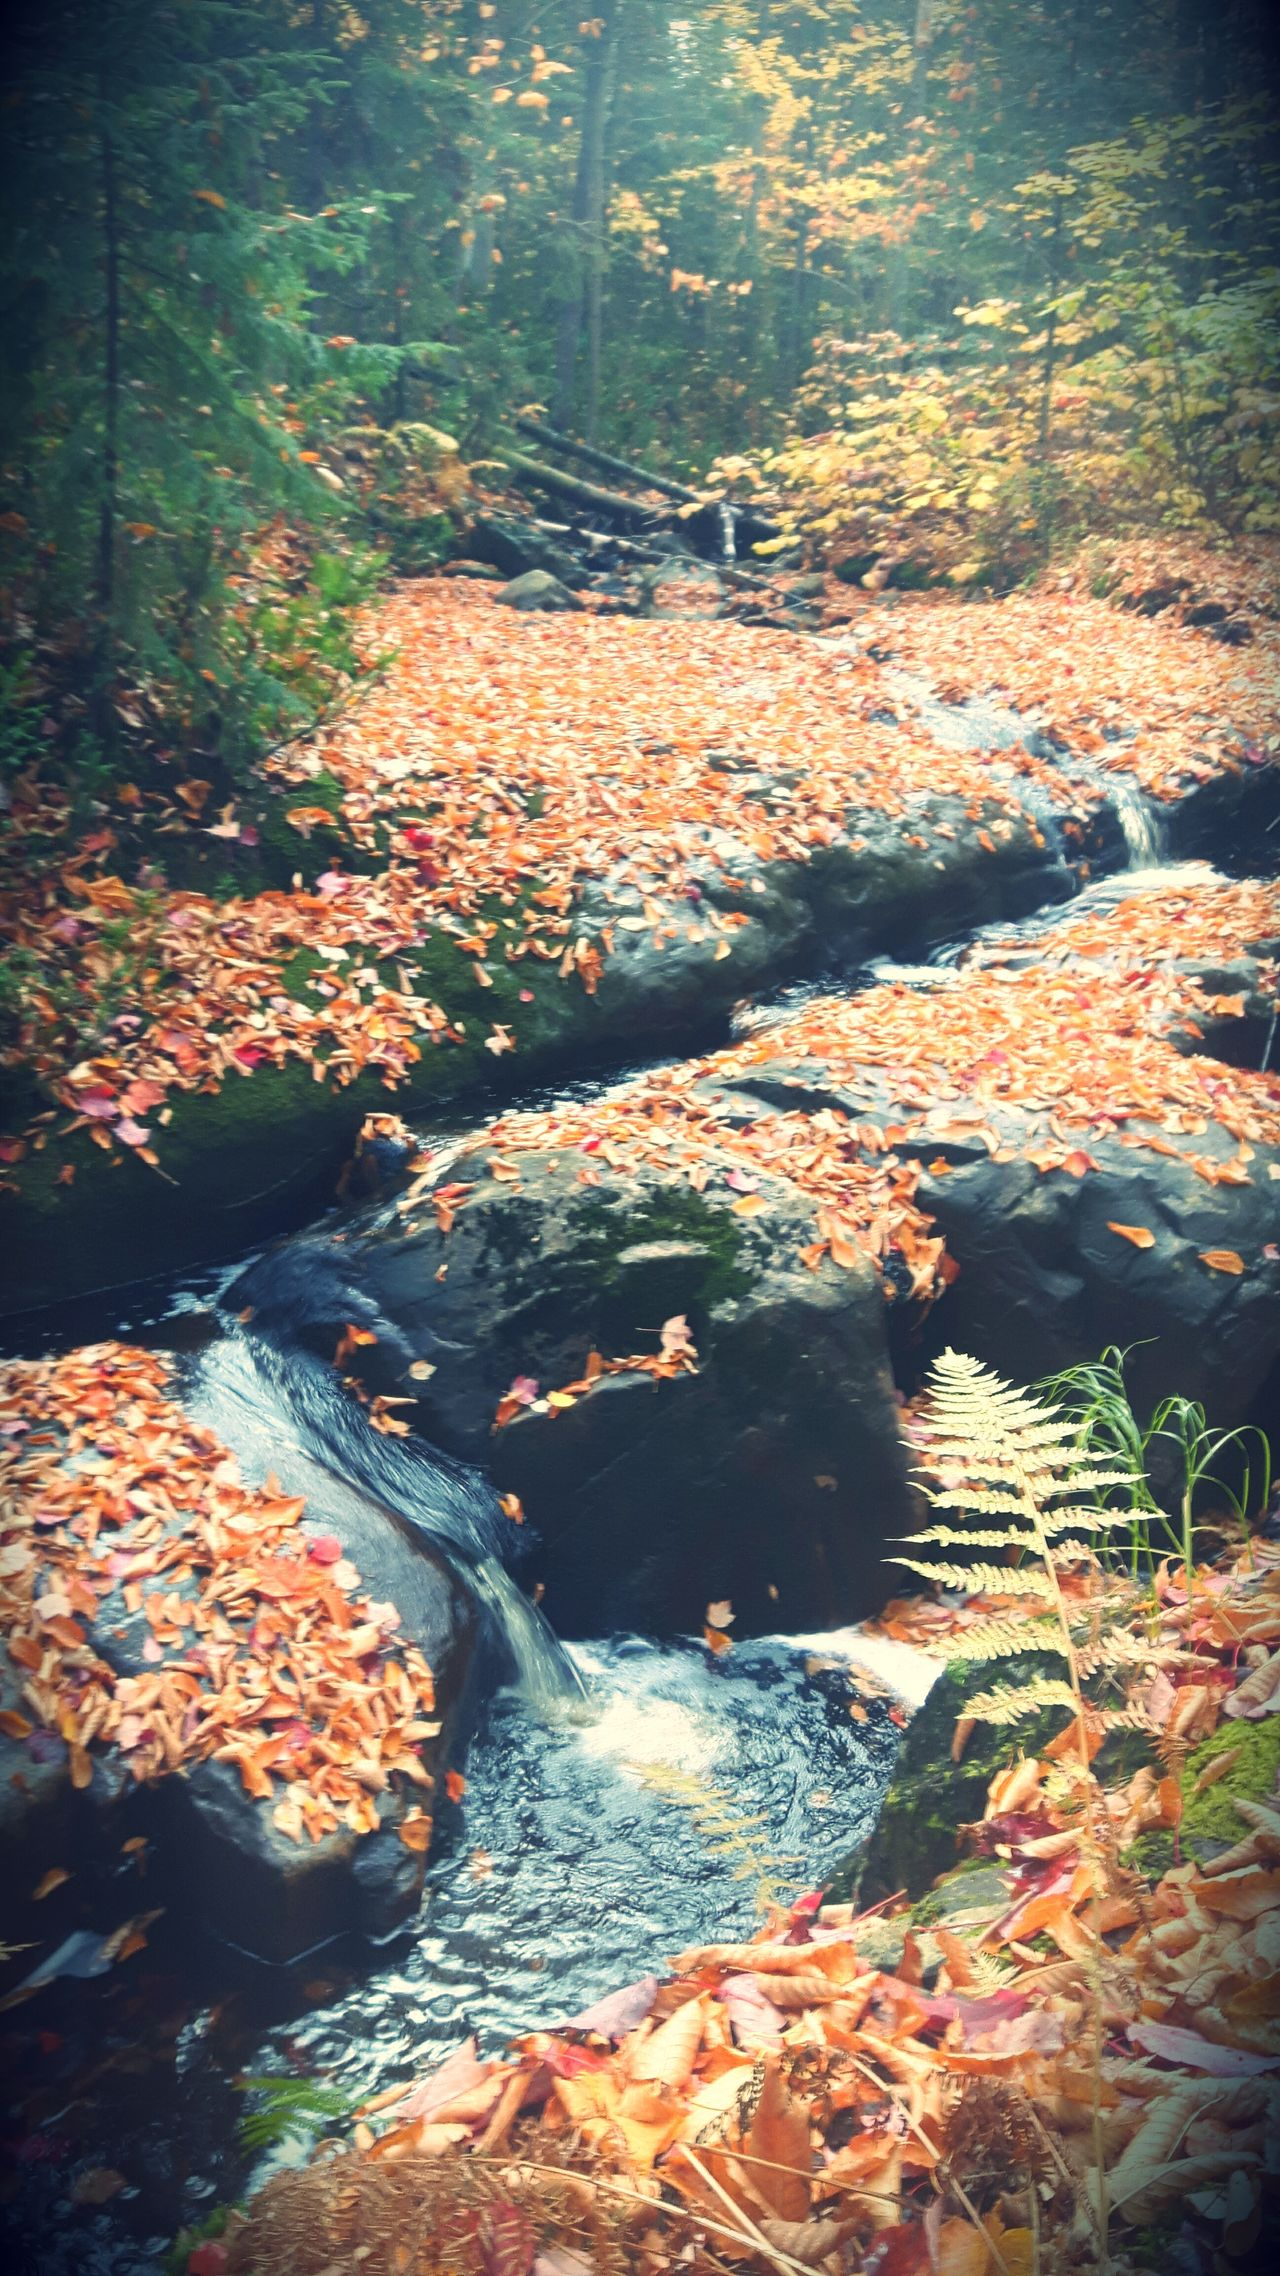 Water Nature Beauty In Nature Outdoors No People Day Scenics Stream Waterfall Water Stream Fall Fall Collection Fall Leaves Fall Season Fall Beauty Fallen Leaves Fall Colors Fall Collection Fallen Leaf